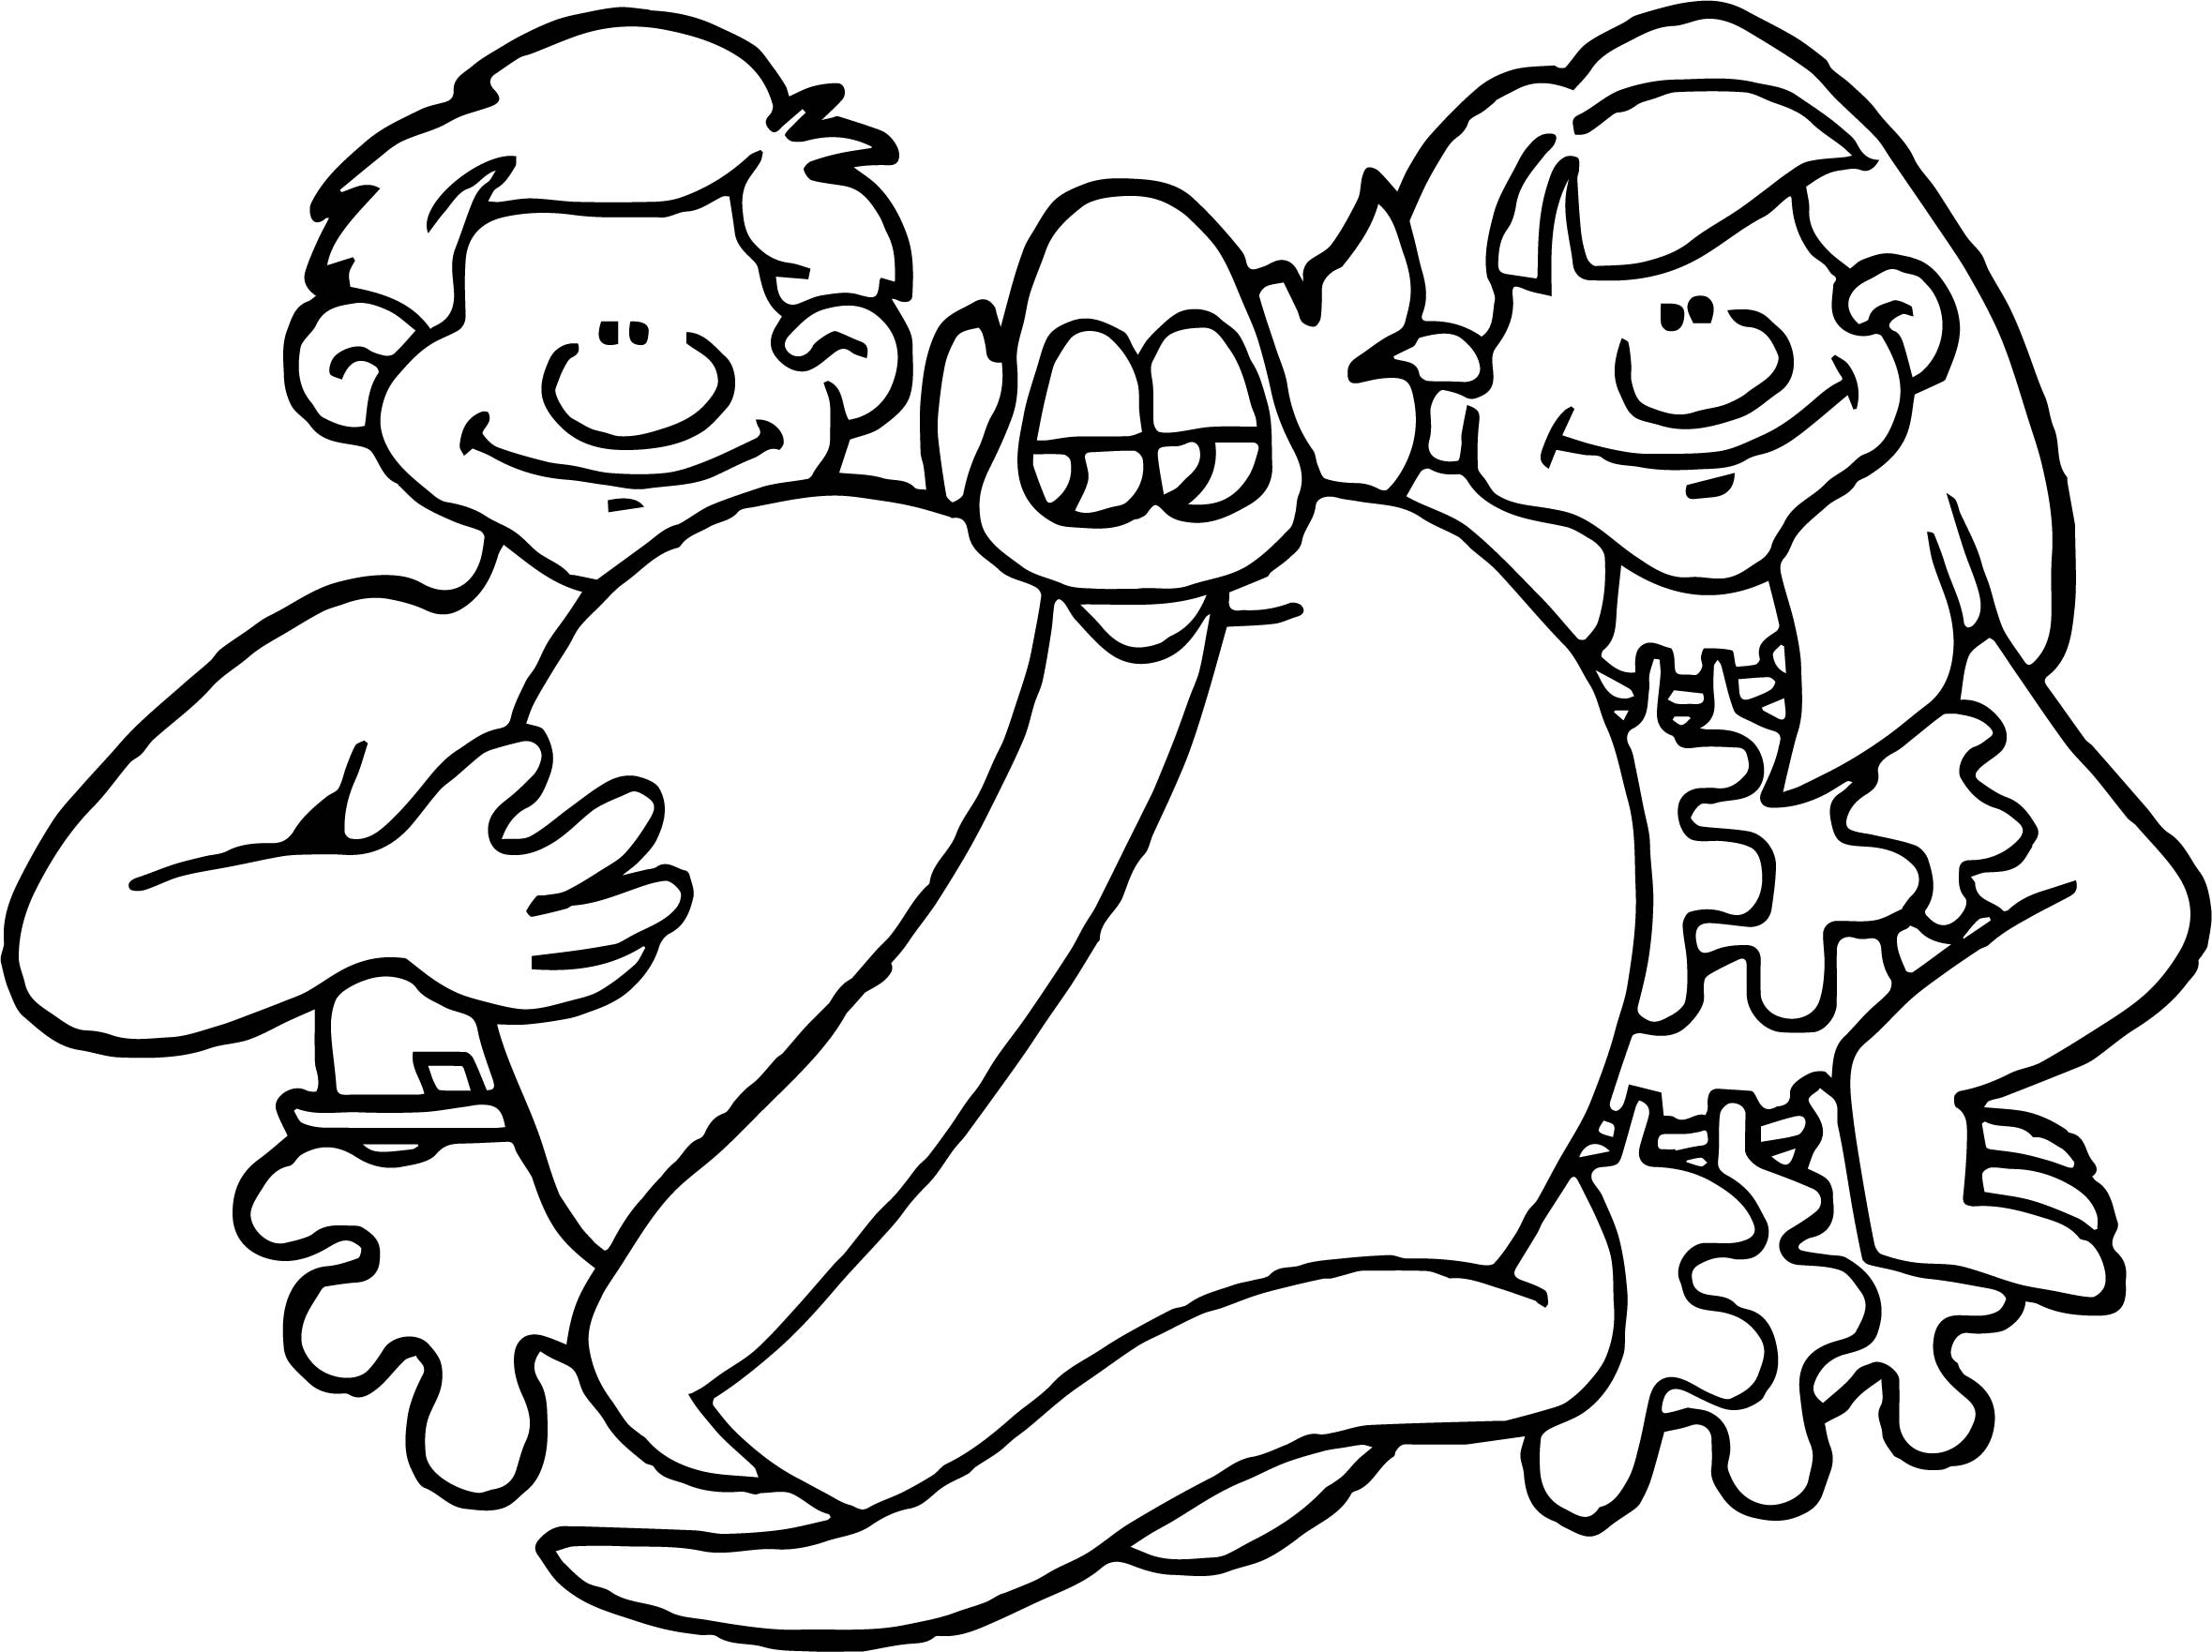 Bible Adam Eve Coloring Page Collection Of And Eve Coloring Pages Coloring Pages Download